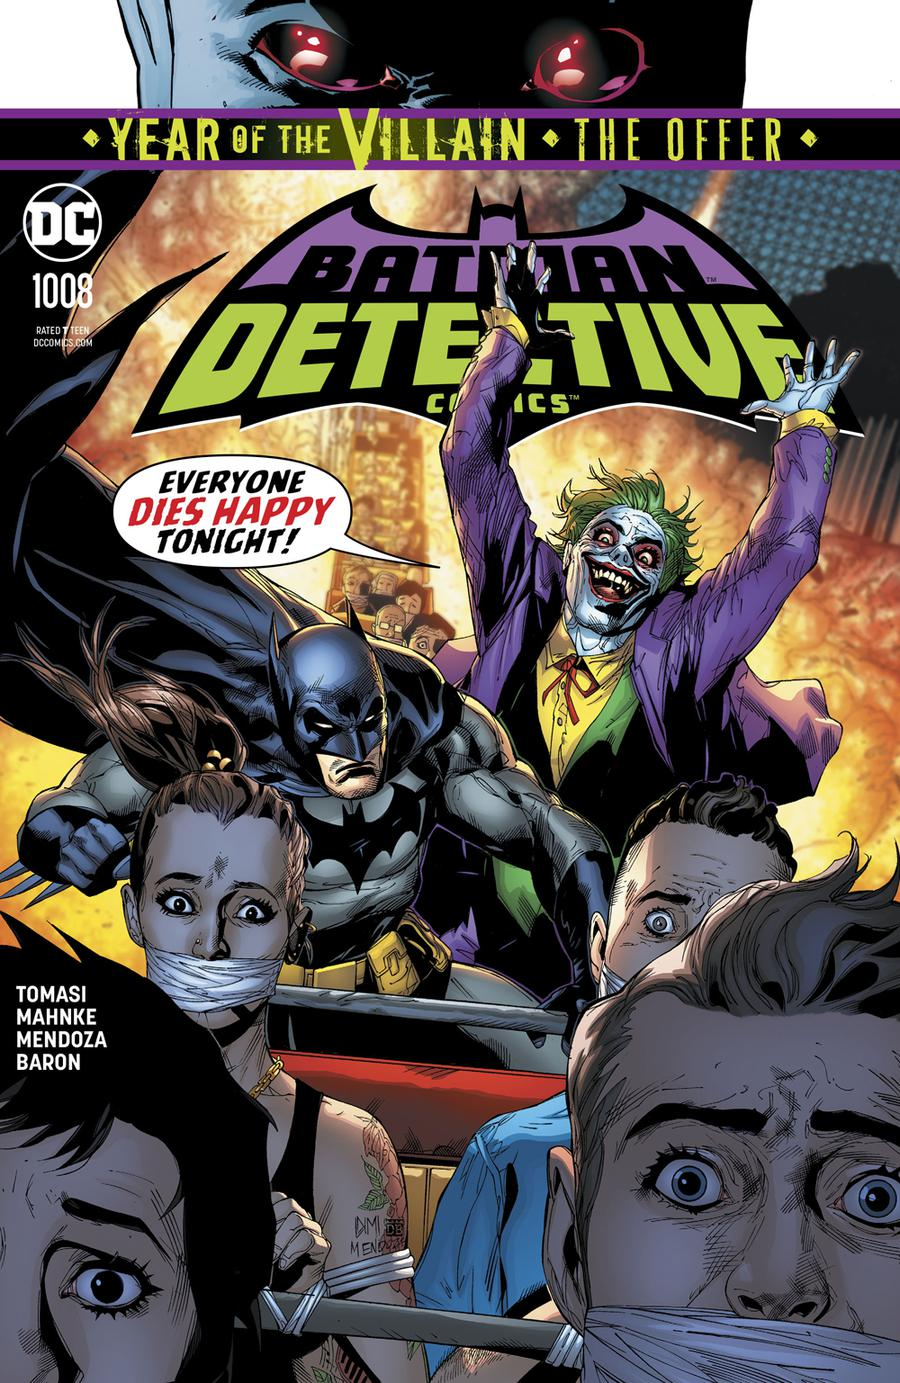 Detective Comics Vol 2 #1008 Cover A Regular Doug Mahnke & Jaime Mendoza Cover (Year Of The Villain The Offer Tie-In)